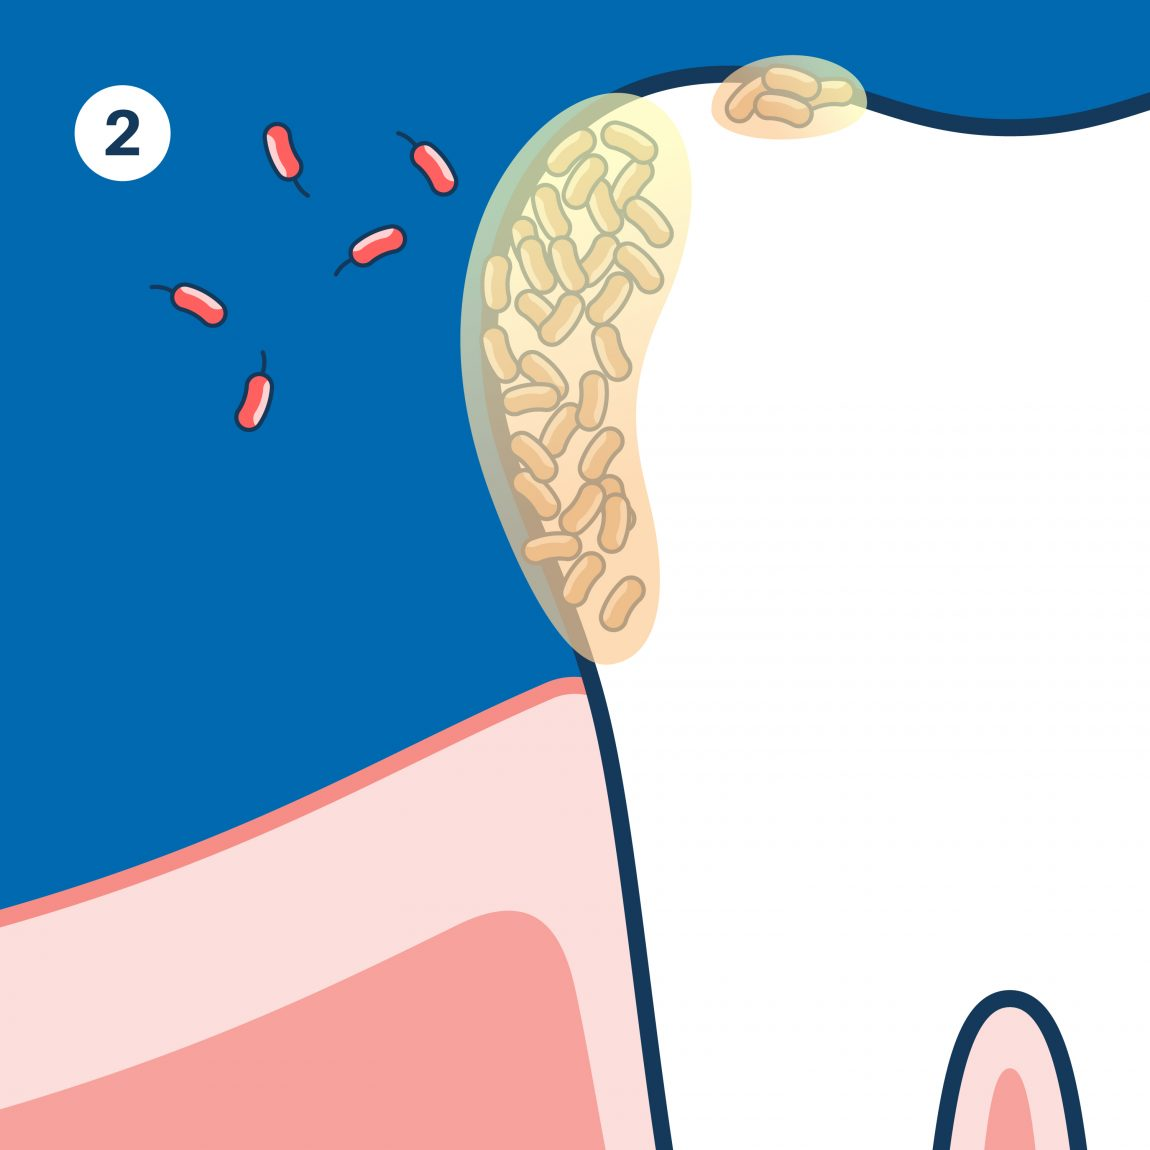 Second stage of dental plaque. Bacteria create mild protective environment on the tooth's surface.